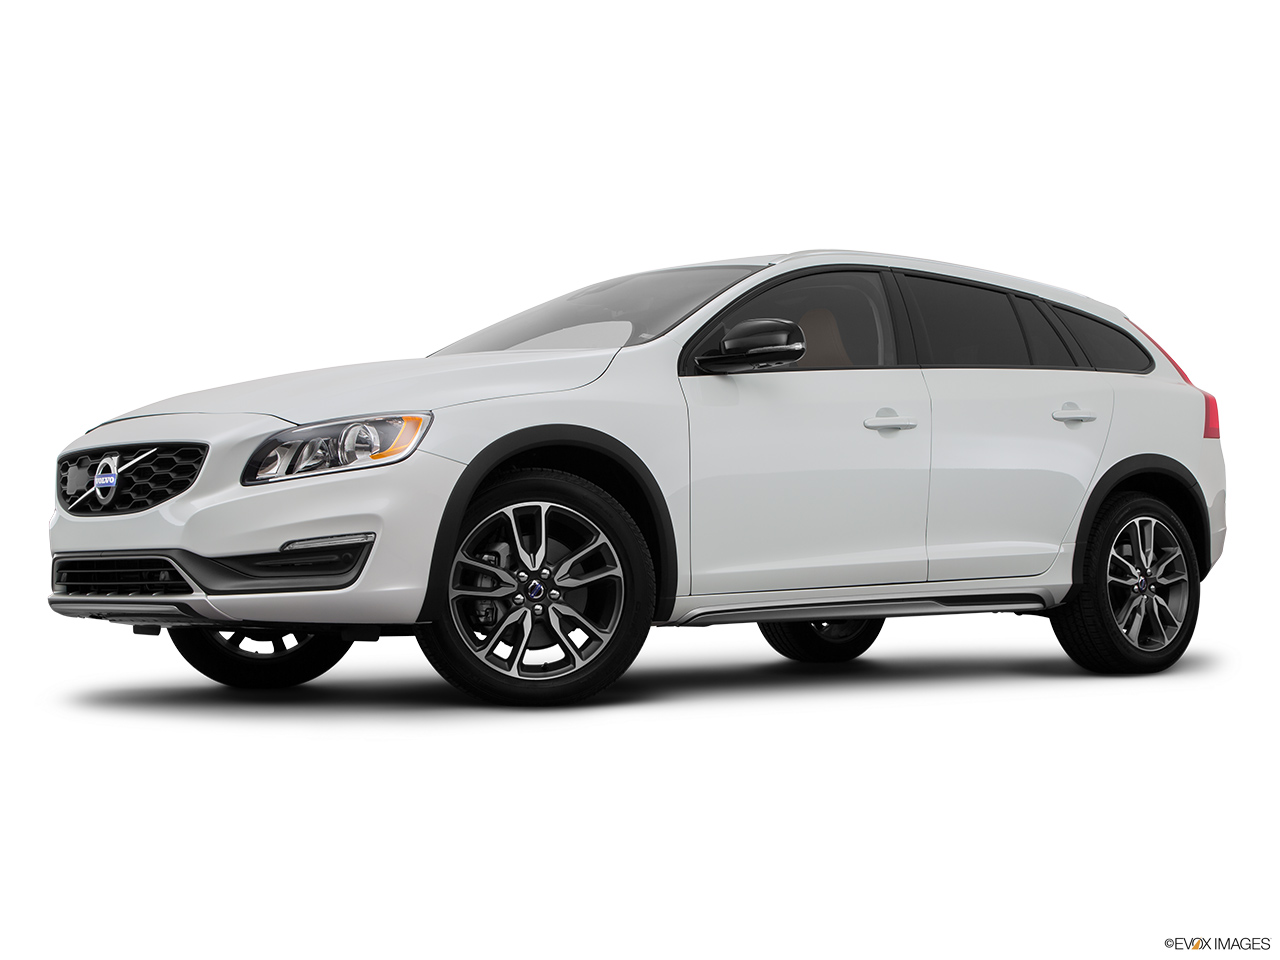 2015 Volvo V60 Cross Country T5 AWD Low/wide front 5/8.